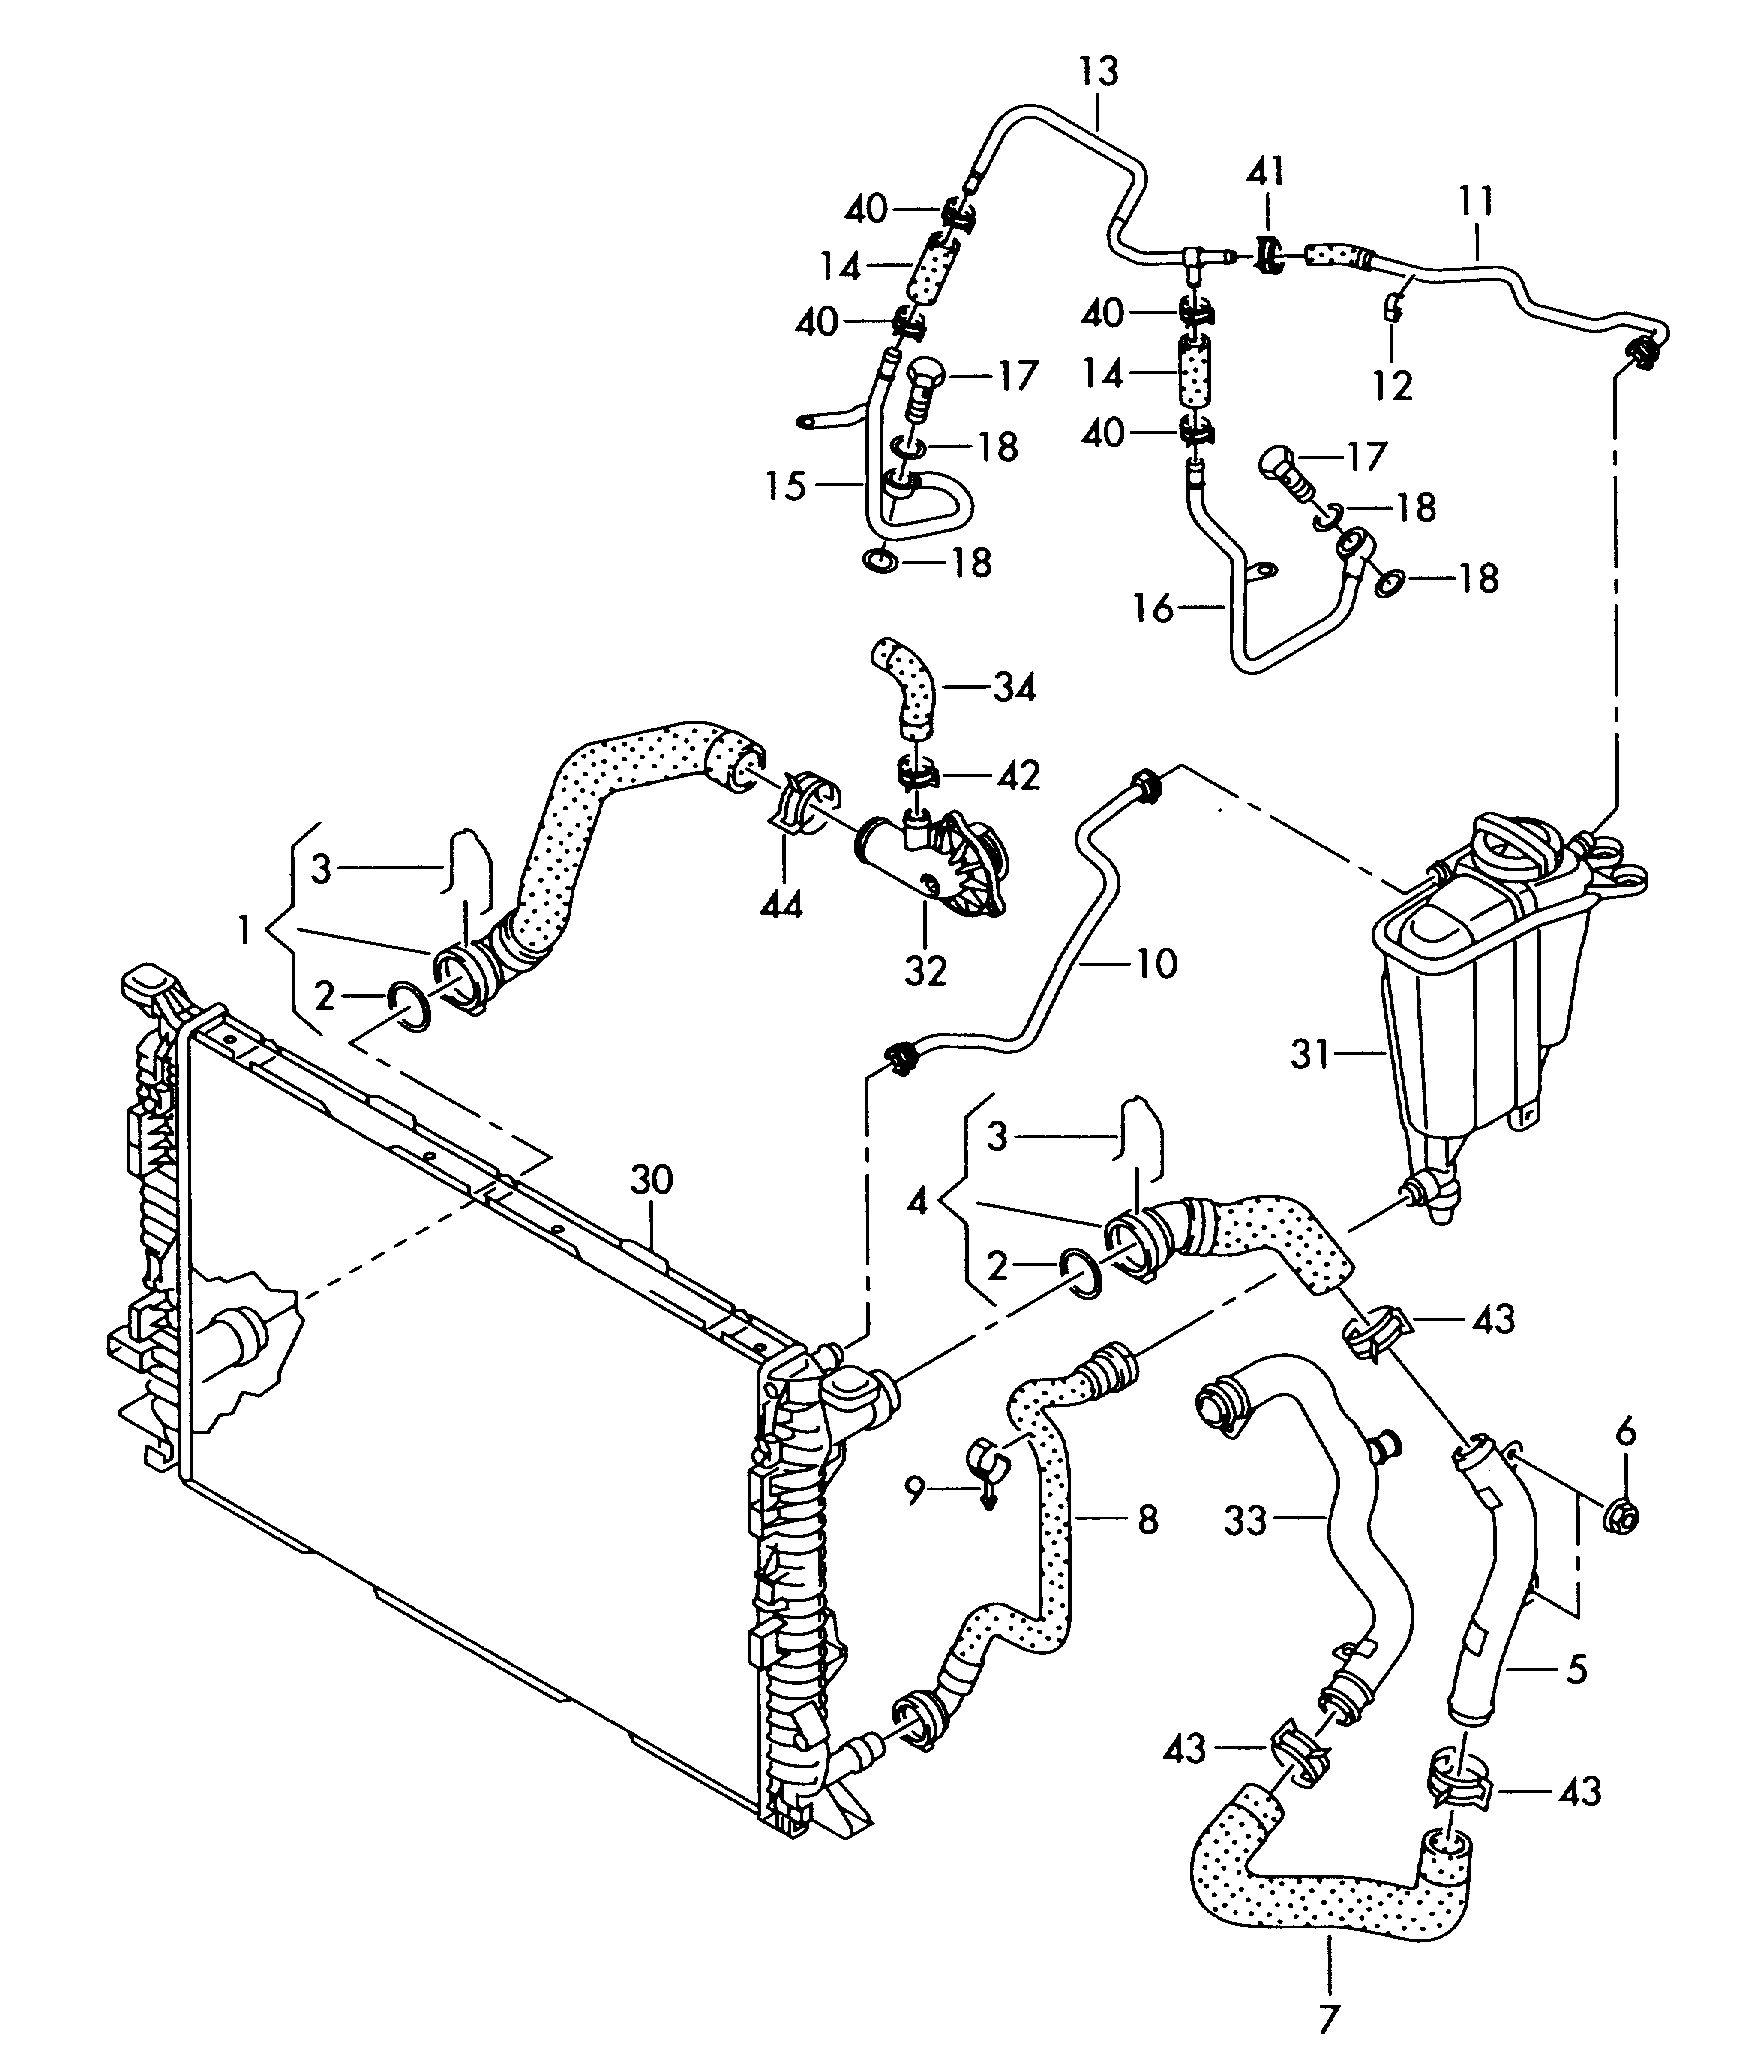 [DIAGRAM] 2000 Audi A6 Engine Diagram Cooling System FULL